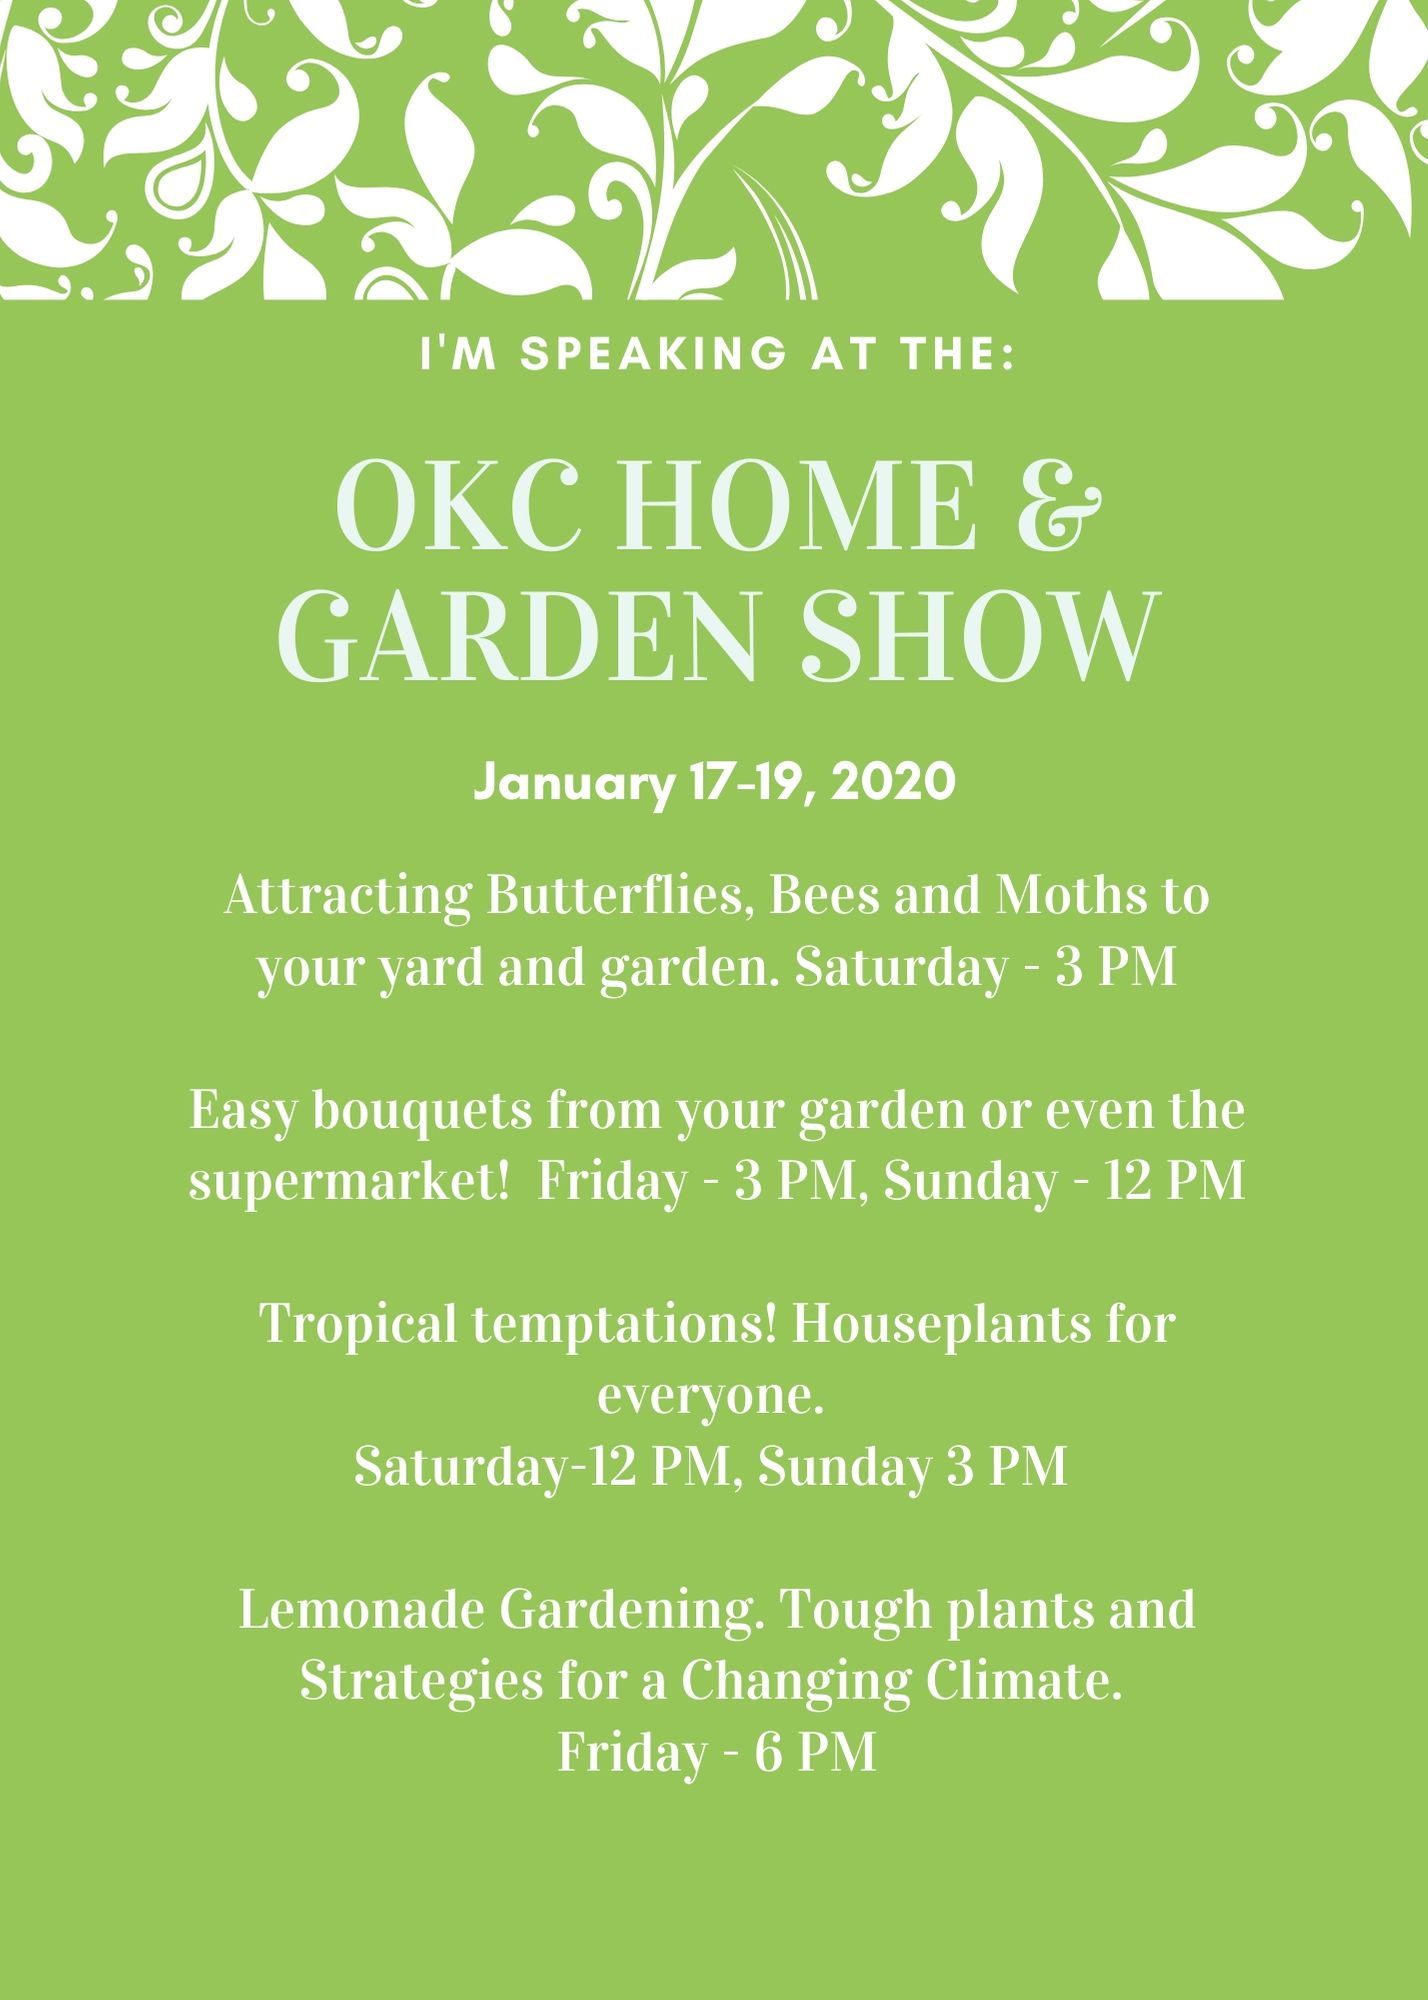 Home and Garden show schedule.